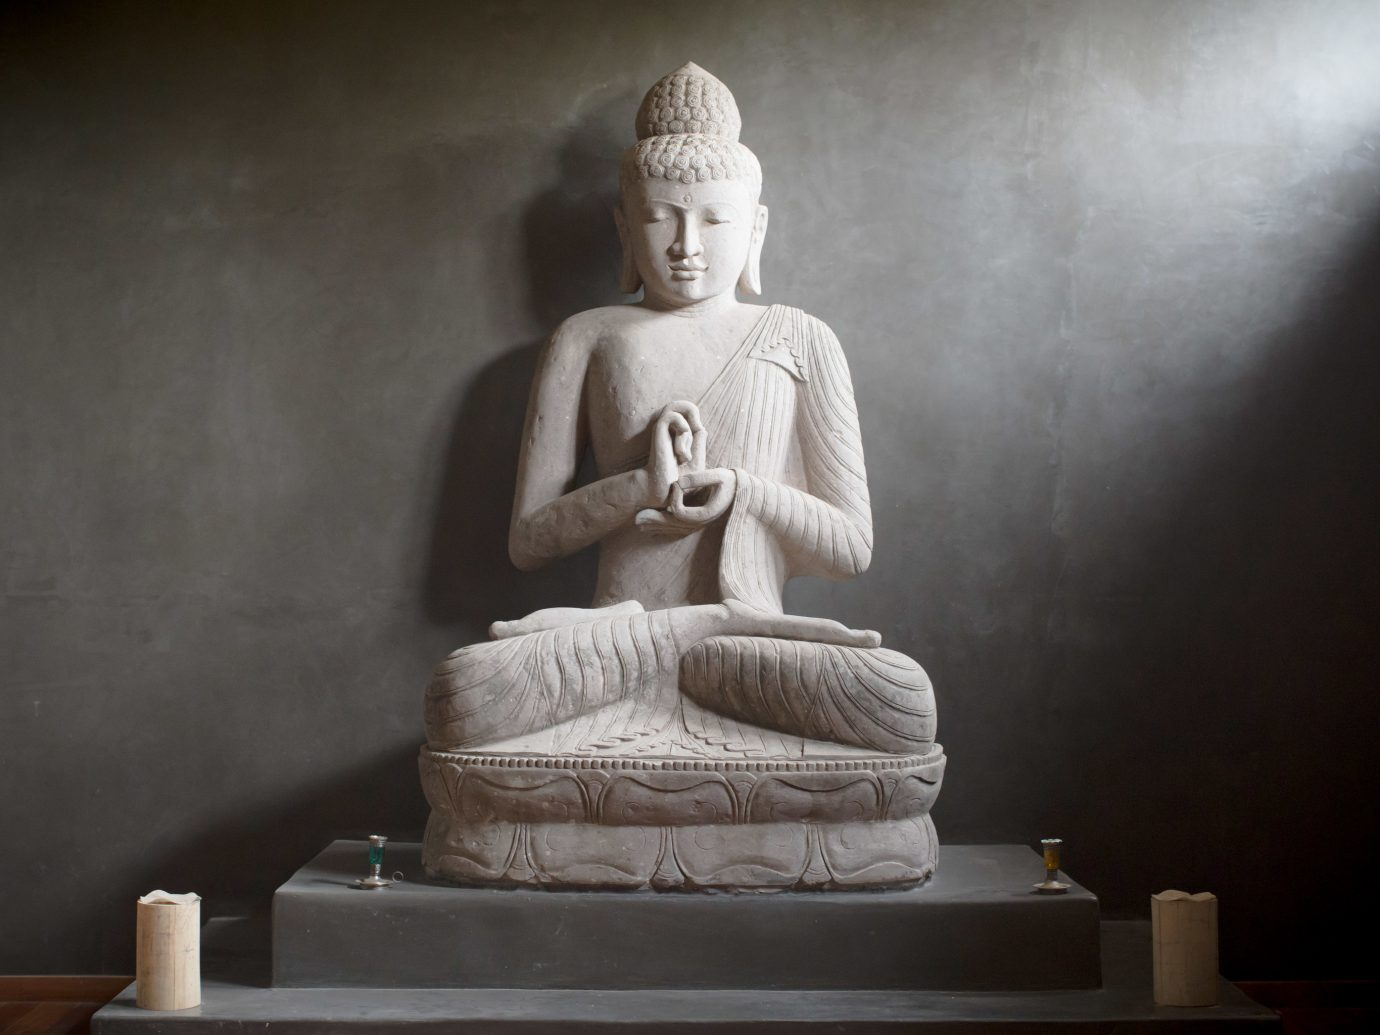 Hotels Solo Travel wall statue indoor sculpture monument human positions gautama buddha art stone carving ancient history temple carving